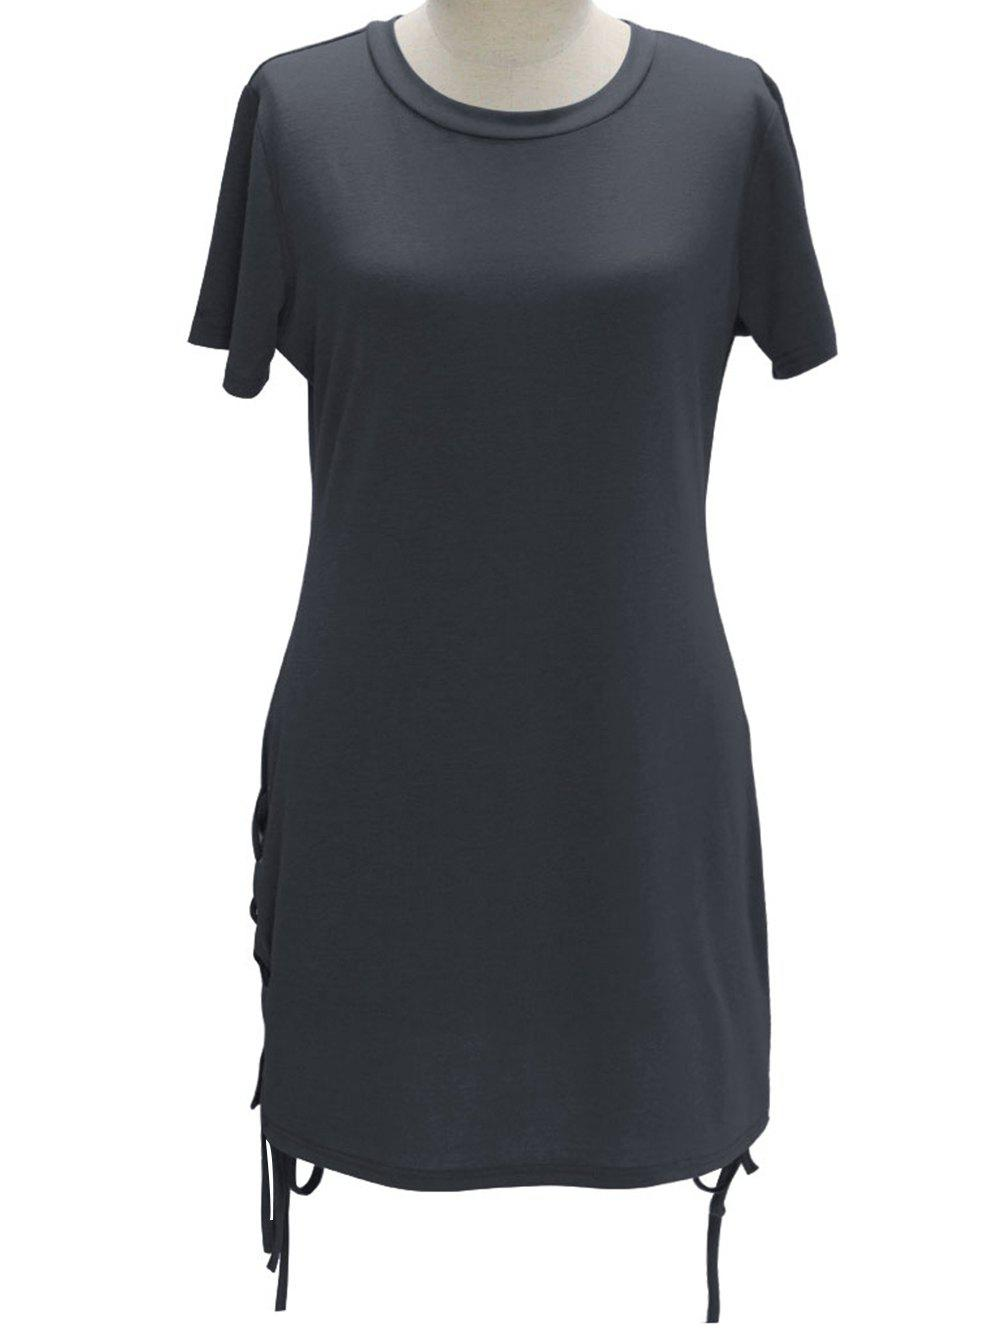 Stylish Round Neck Short Sleeves Strappy Pure Color Women's Dress